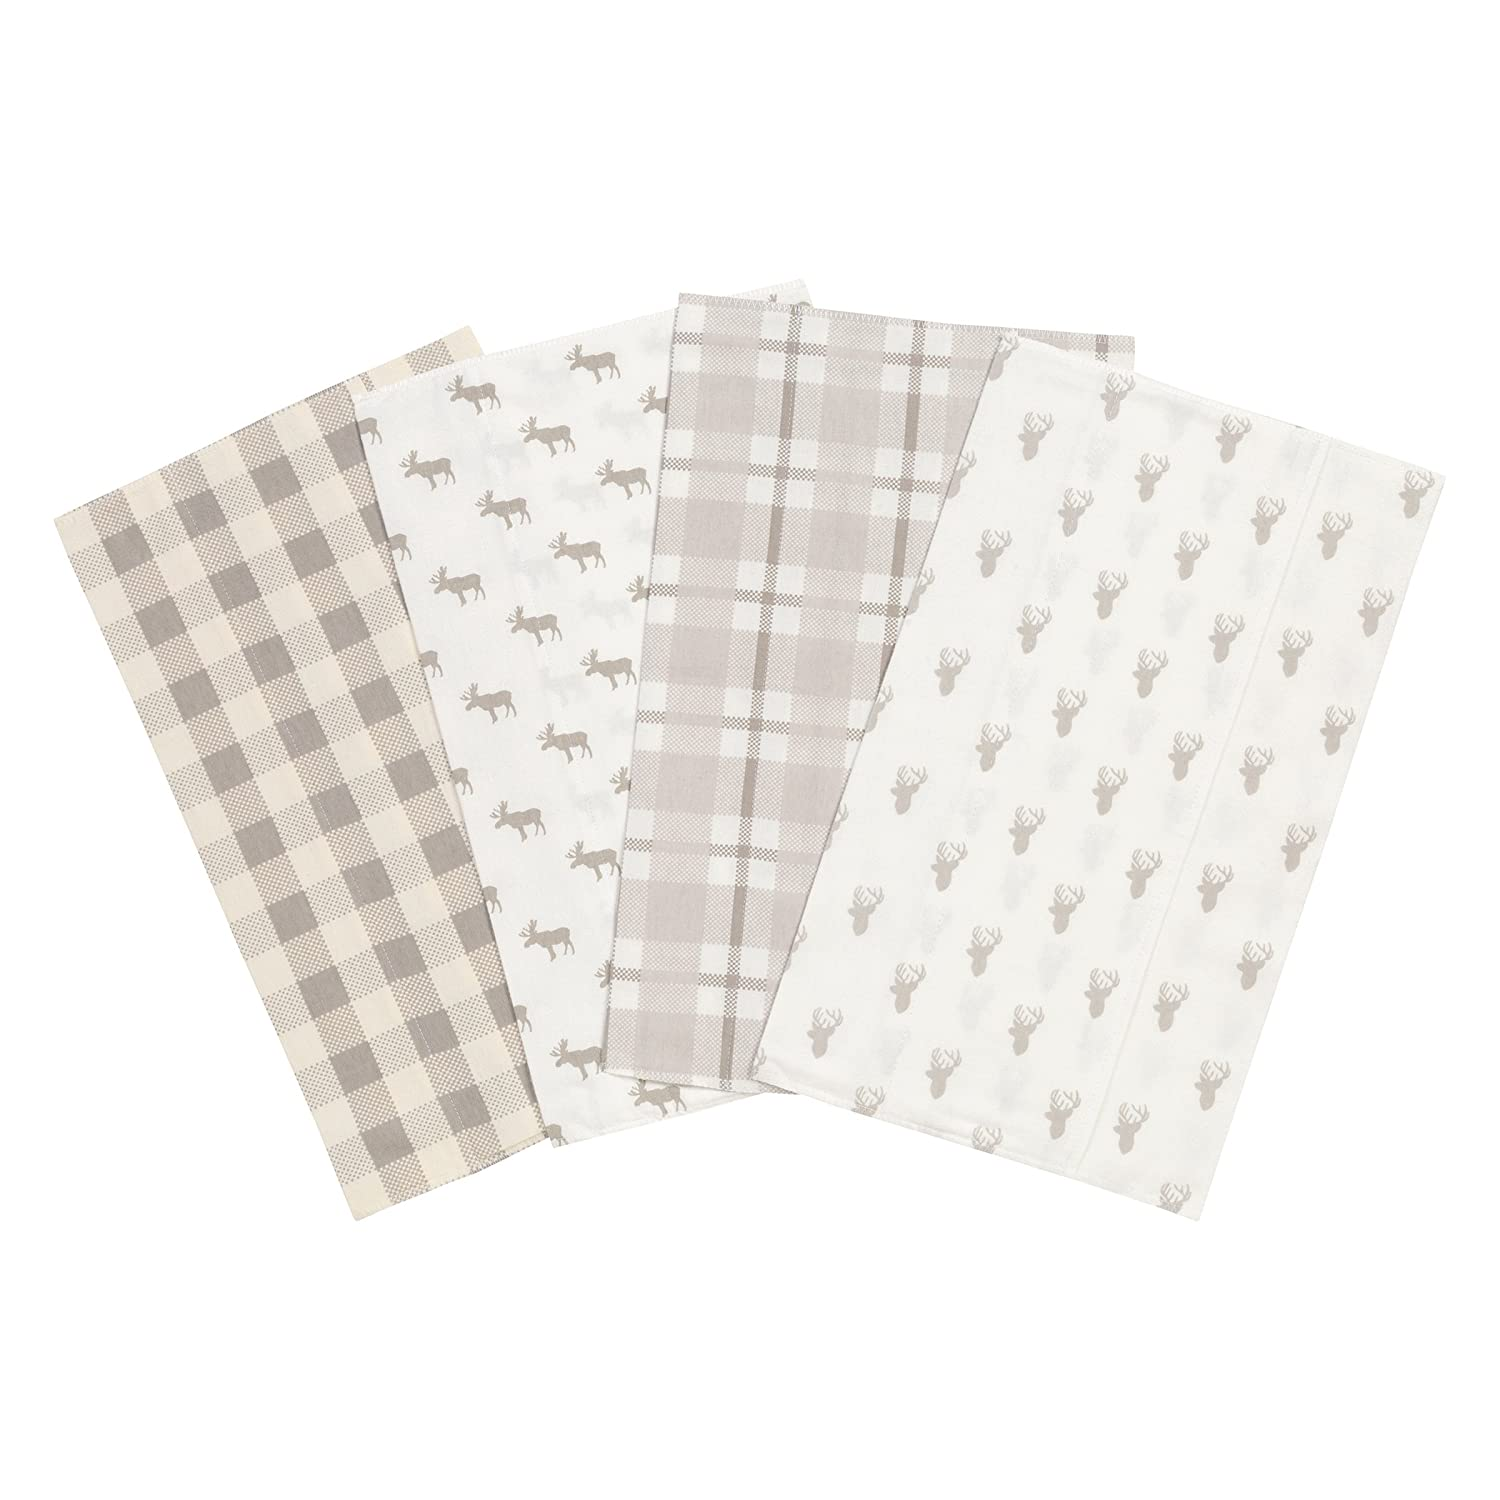 Trend Lab Stag and Moose Flannel Burp Cloth Set, 4 Piece 103201